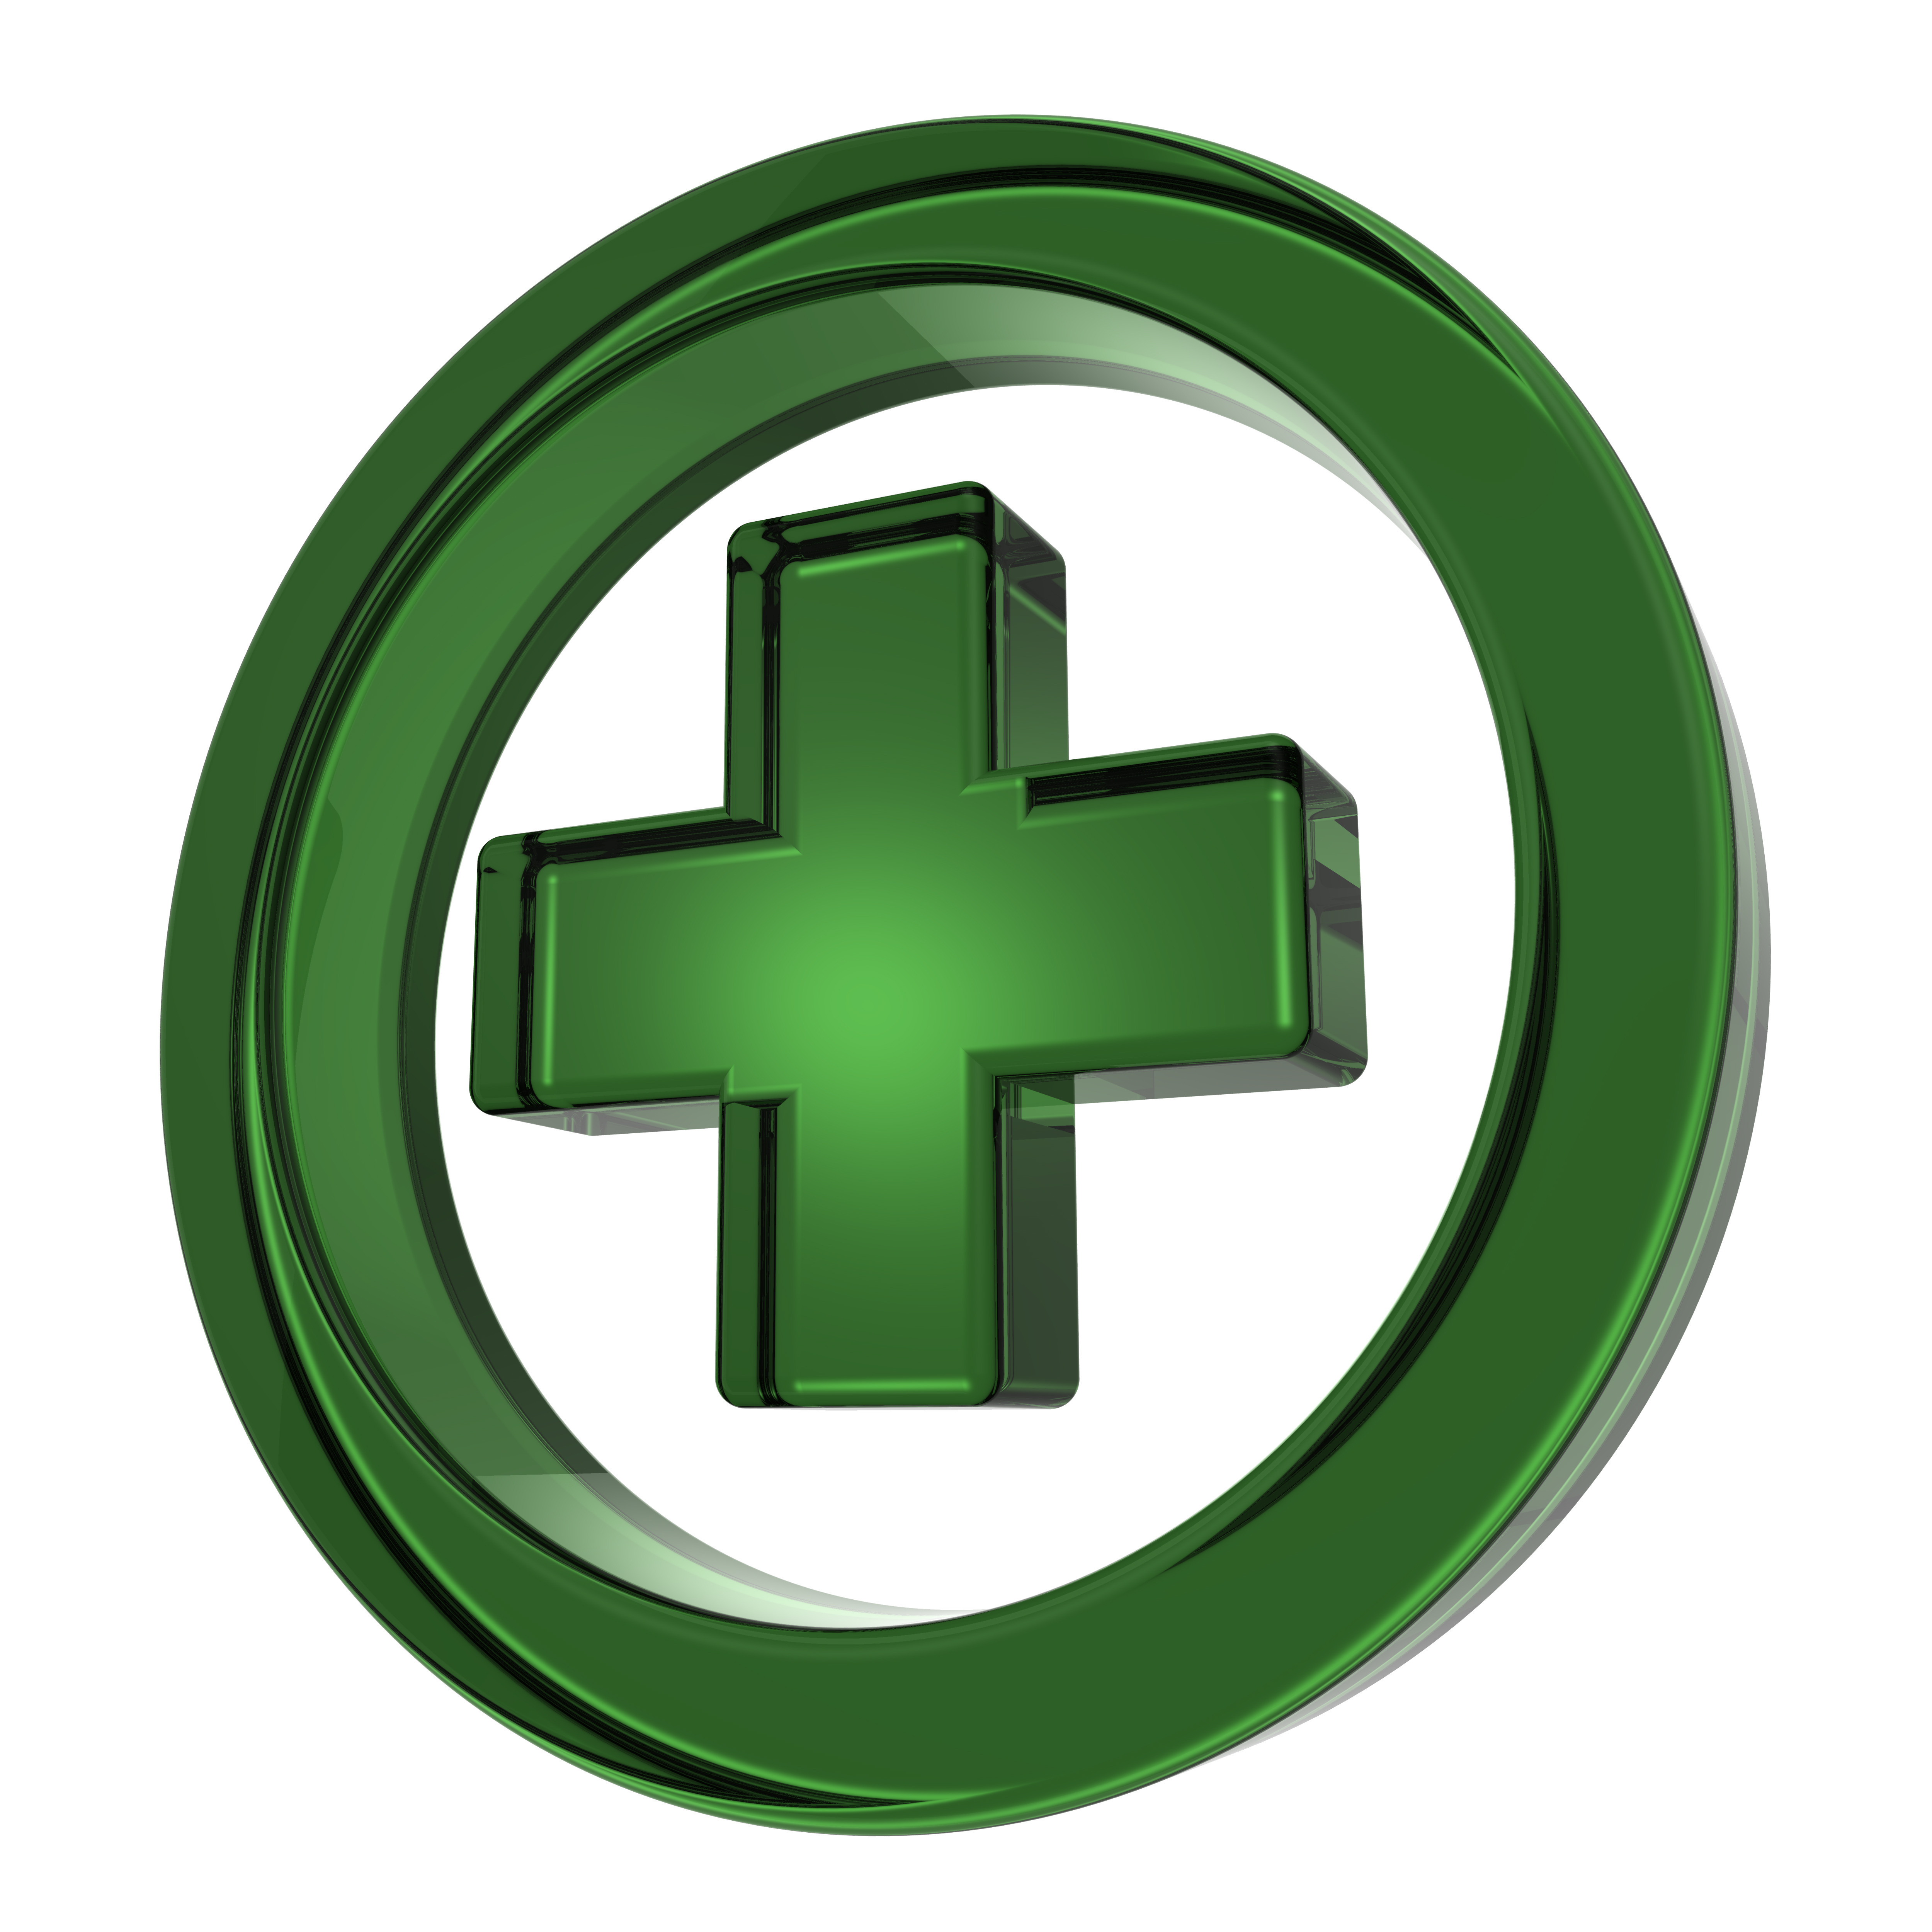 hse approved first aid at work course